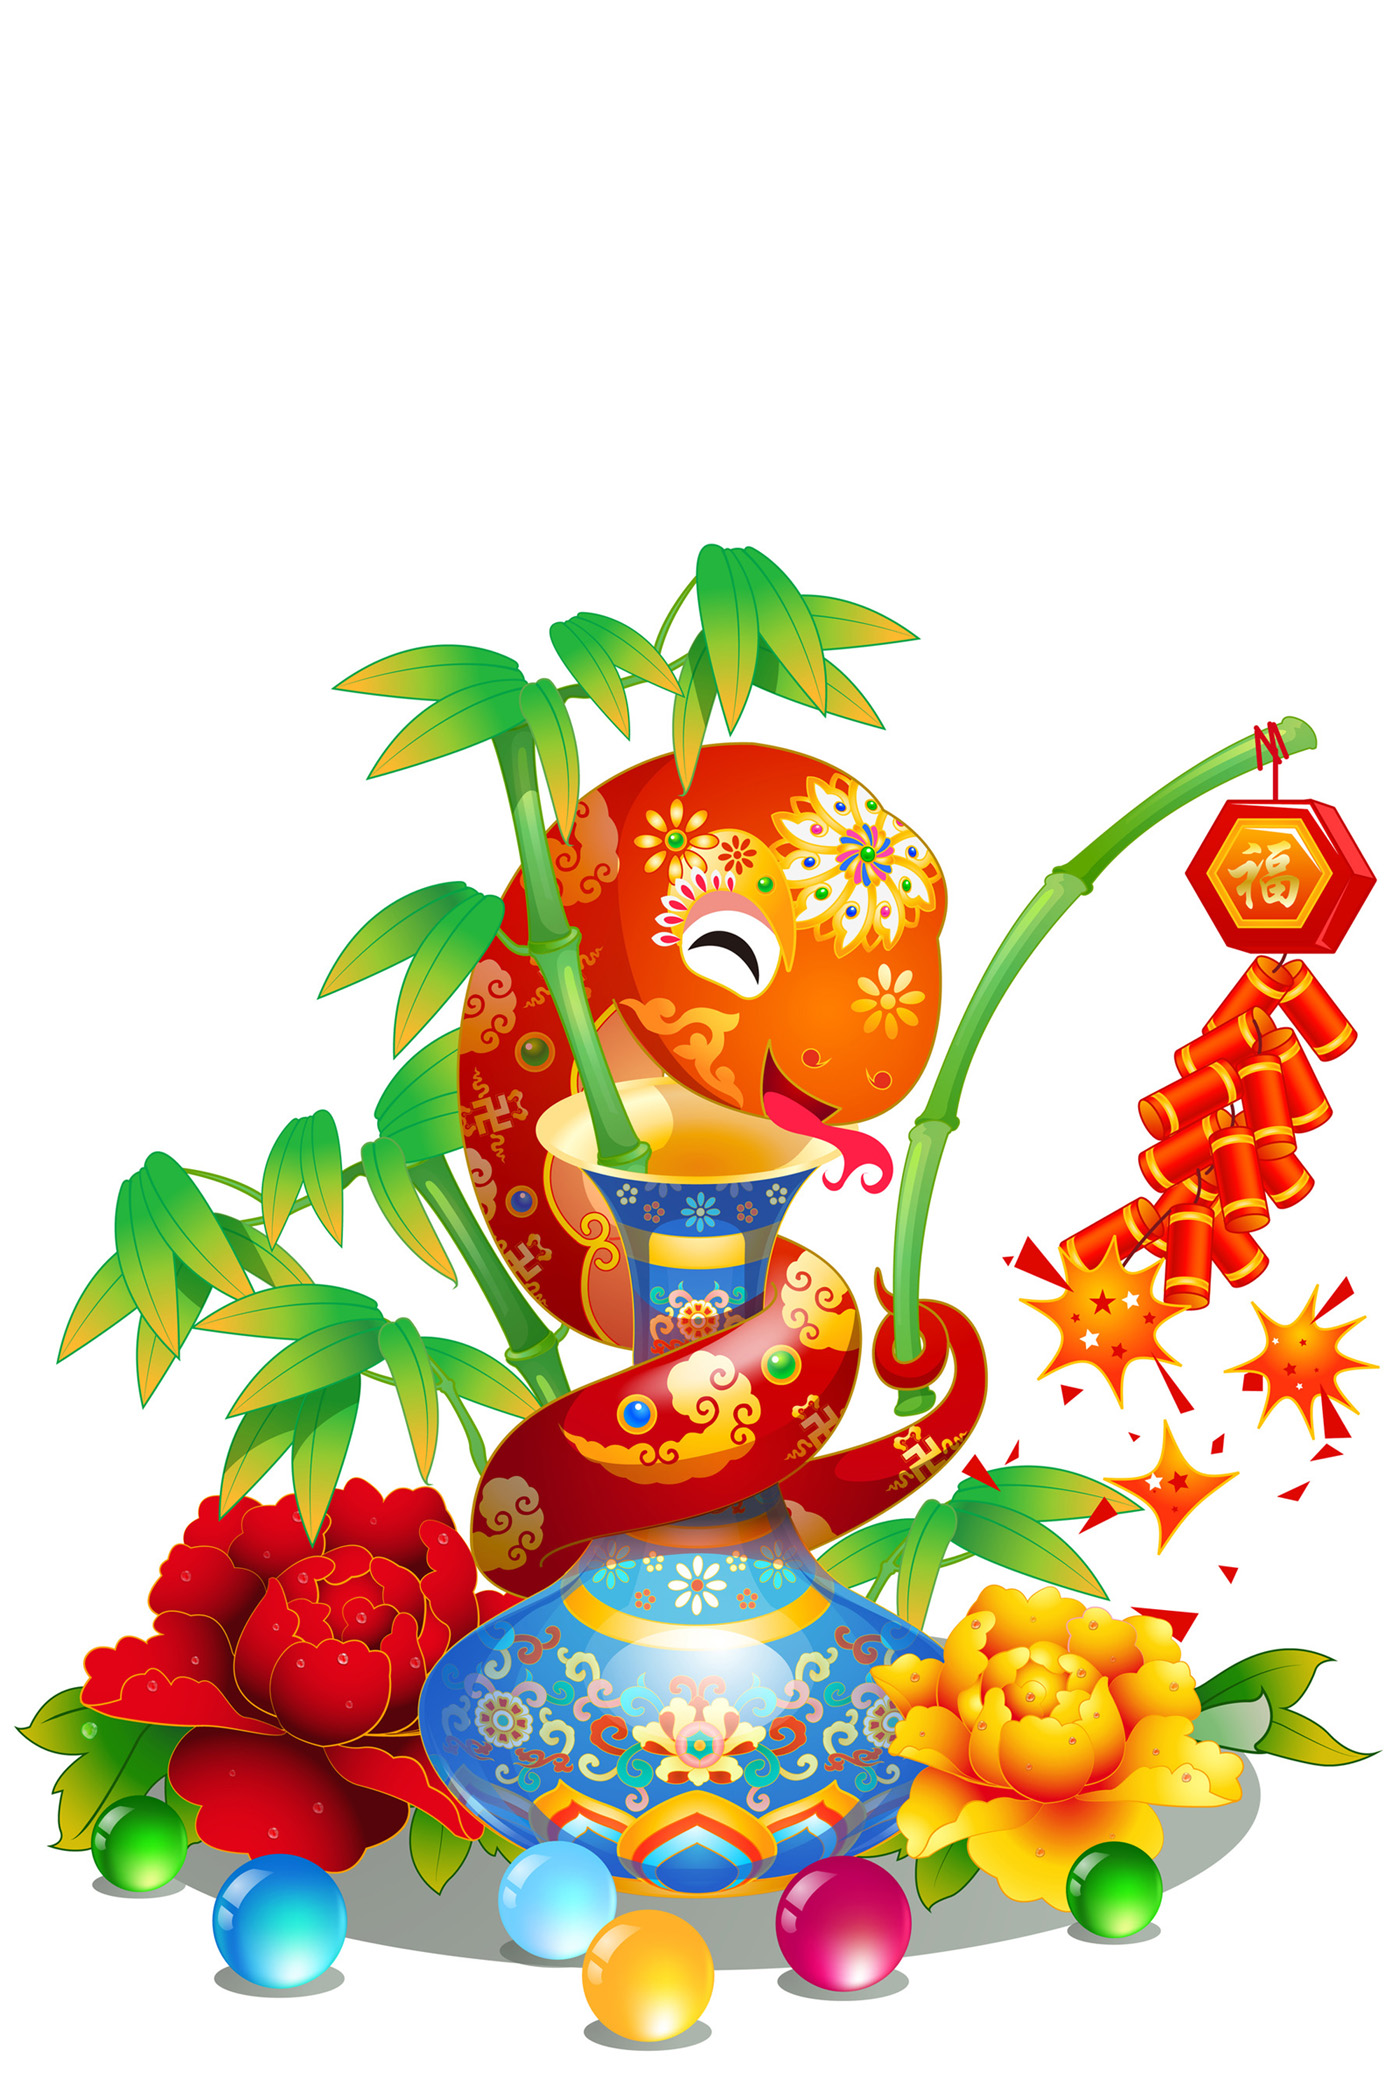 Year Of The Snake Blessing 32085 New Wallpapers Festival